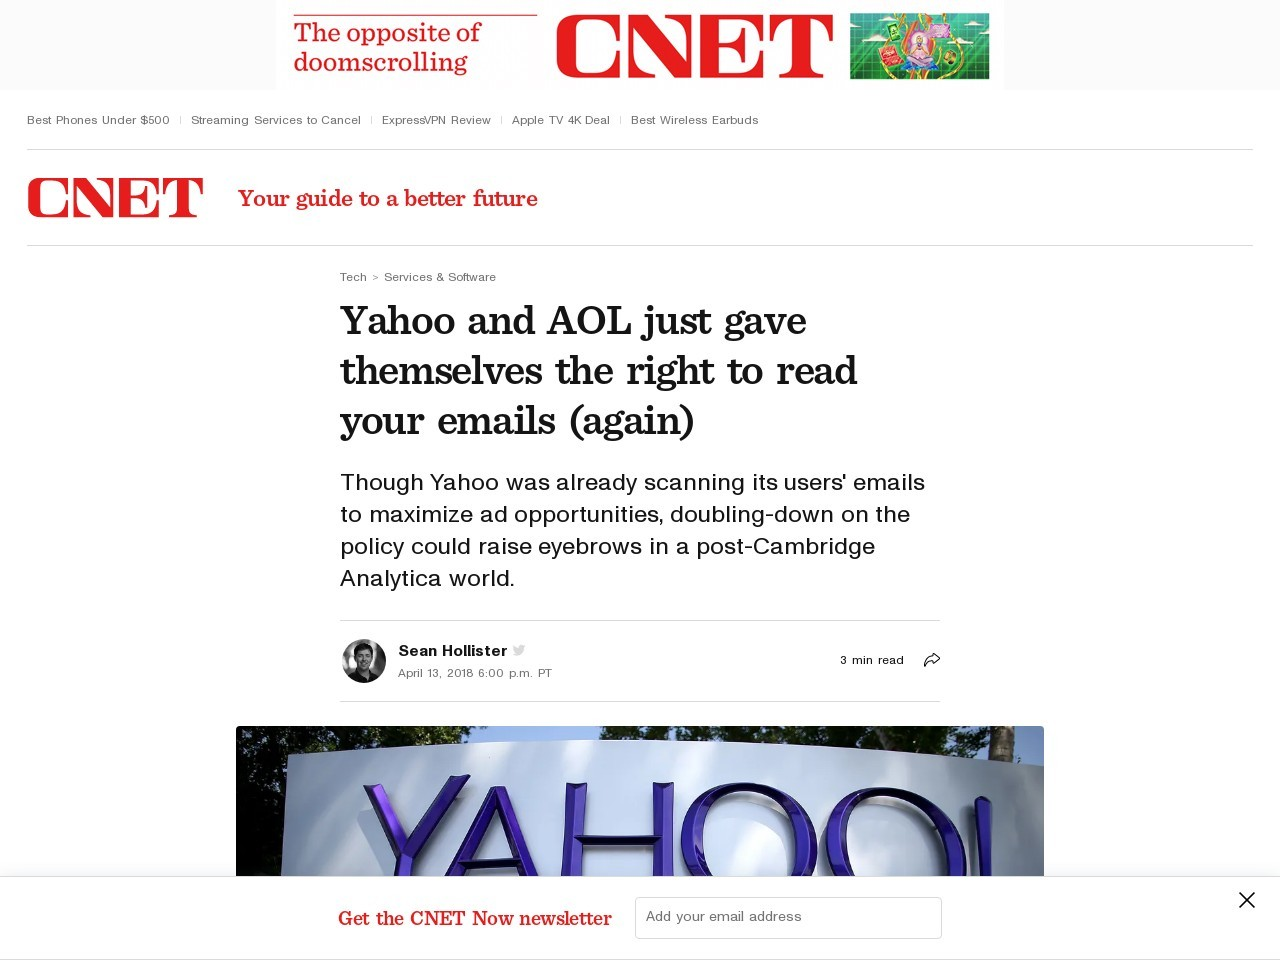 Yahoo and AOL just gave themselves the right to read your emails (again)     – CNET